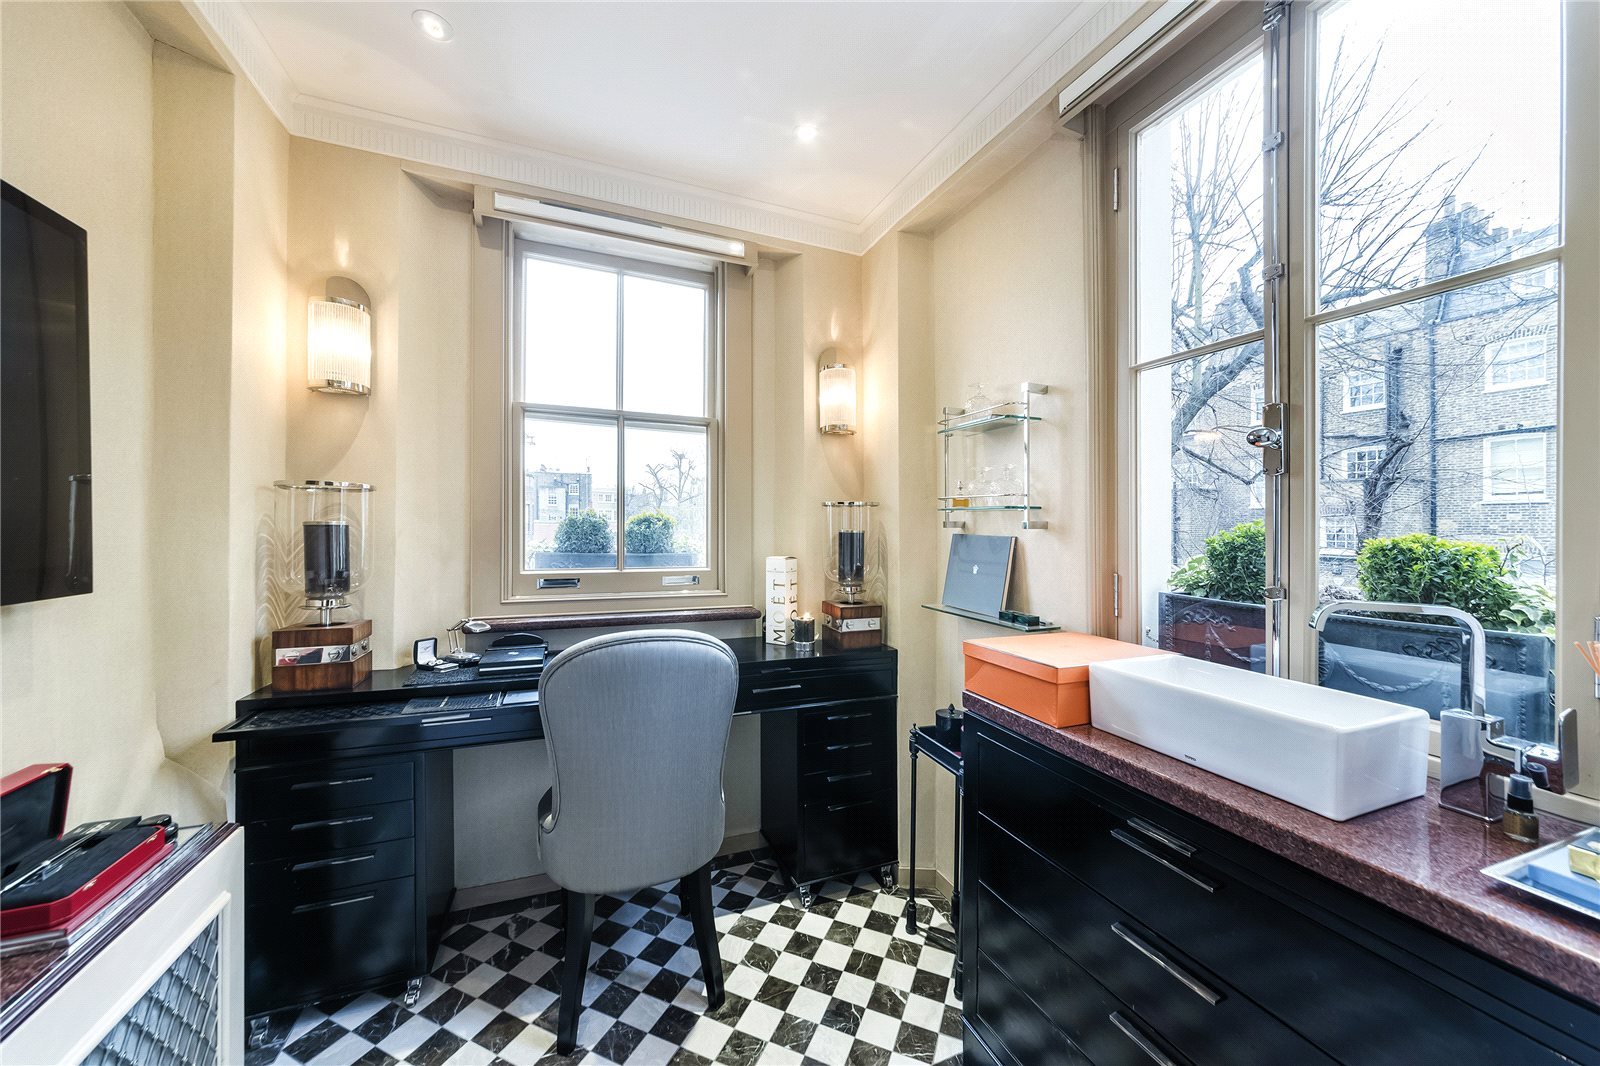 Additional photo for property listing at Thurloe Place, South Kensington, SW7 South Kensington, England